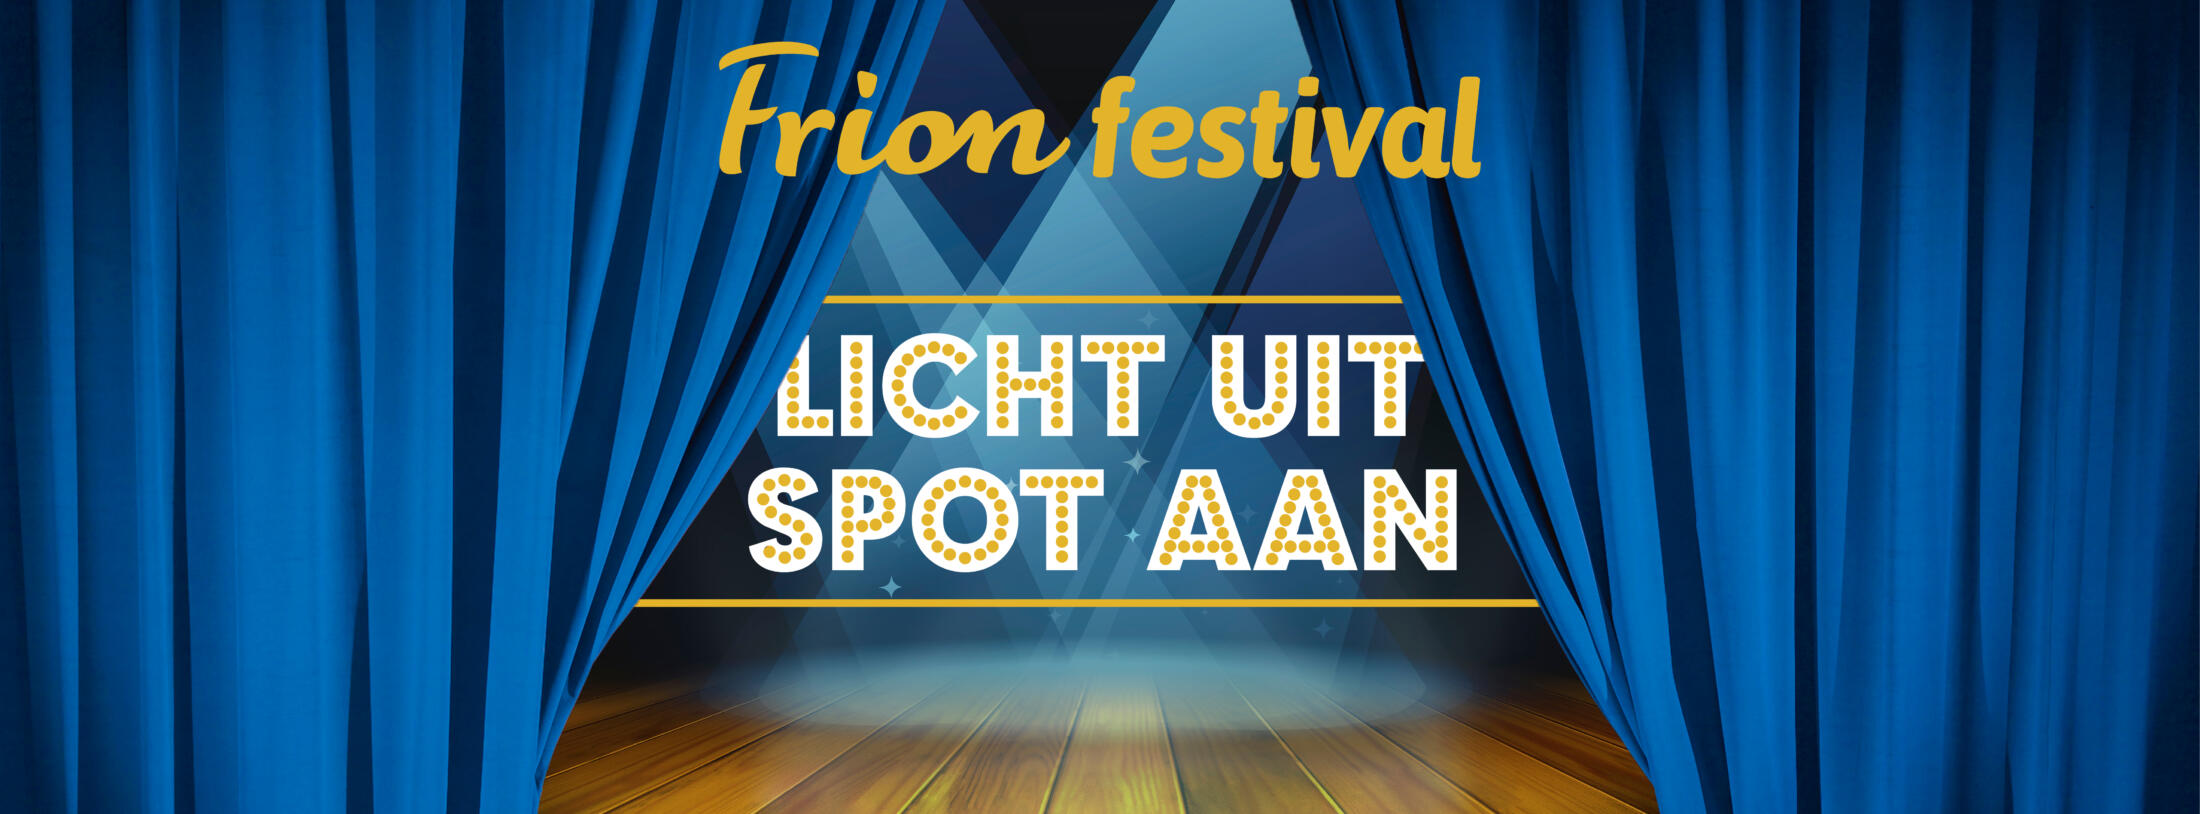 210092_VRIENDEN VAN FRION_FESTIVAL 2021_HEADER_WEBSITE V2